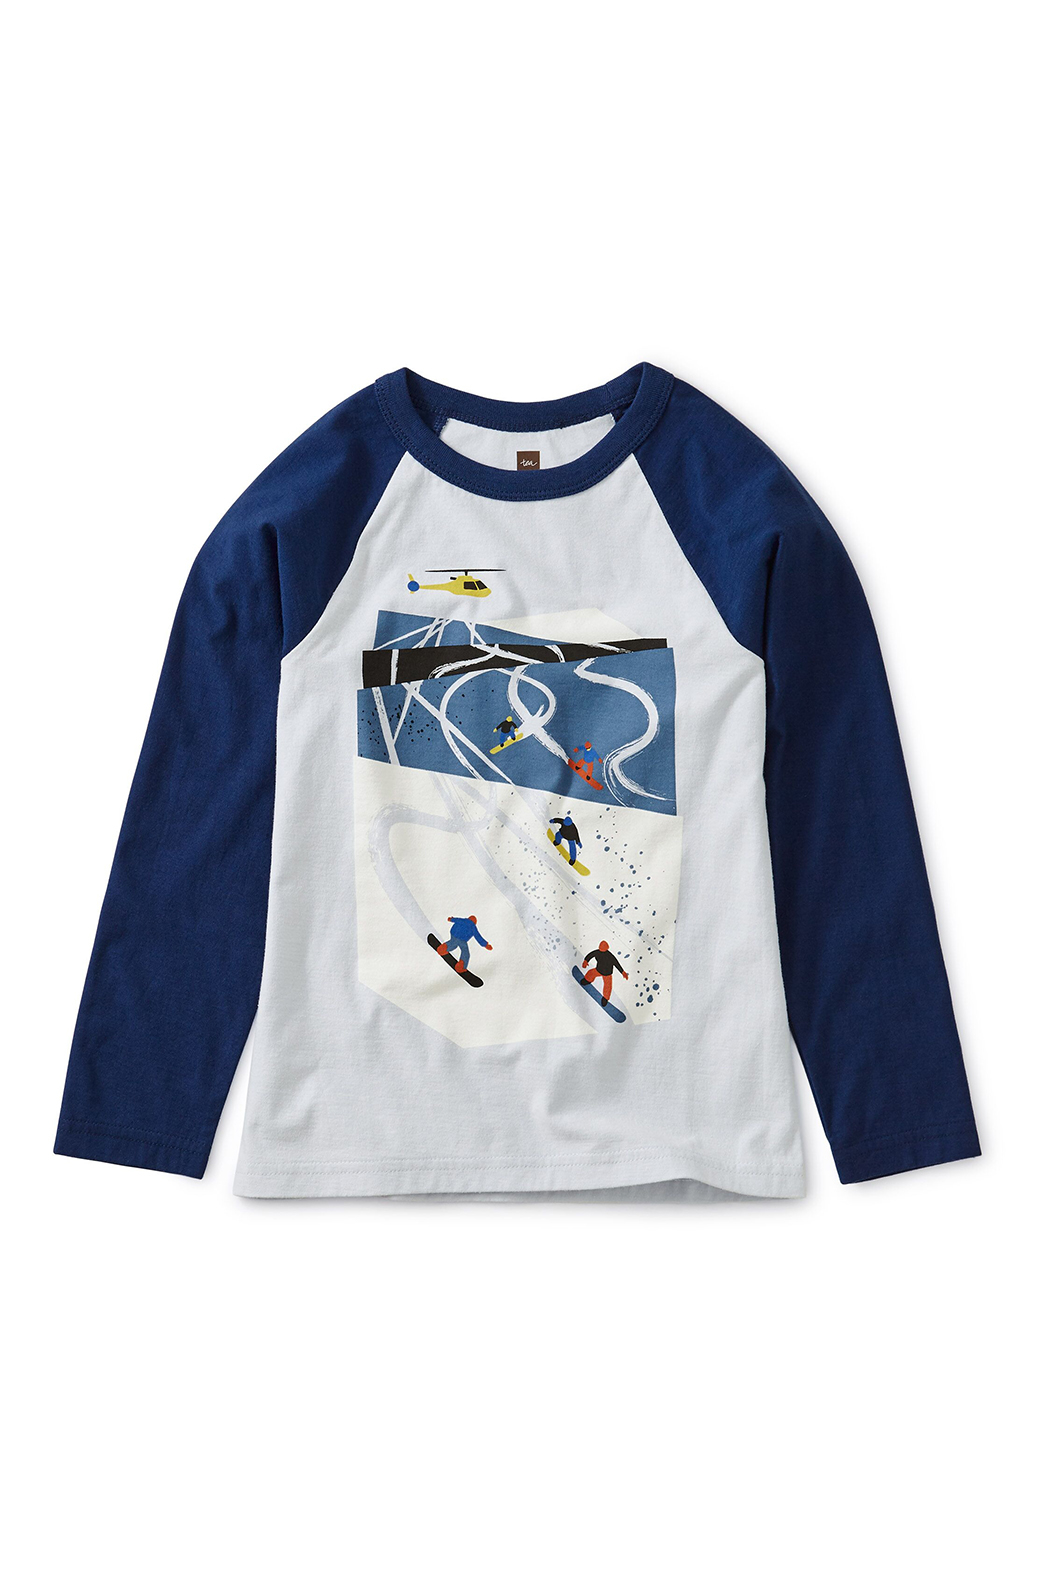 Tea Collection Ski Slopes Raglan Tee - Main Image